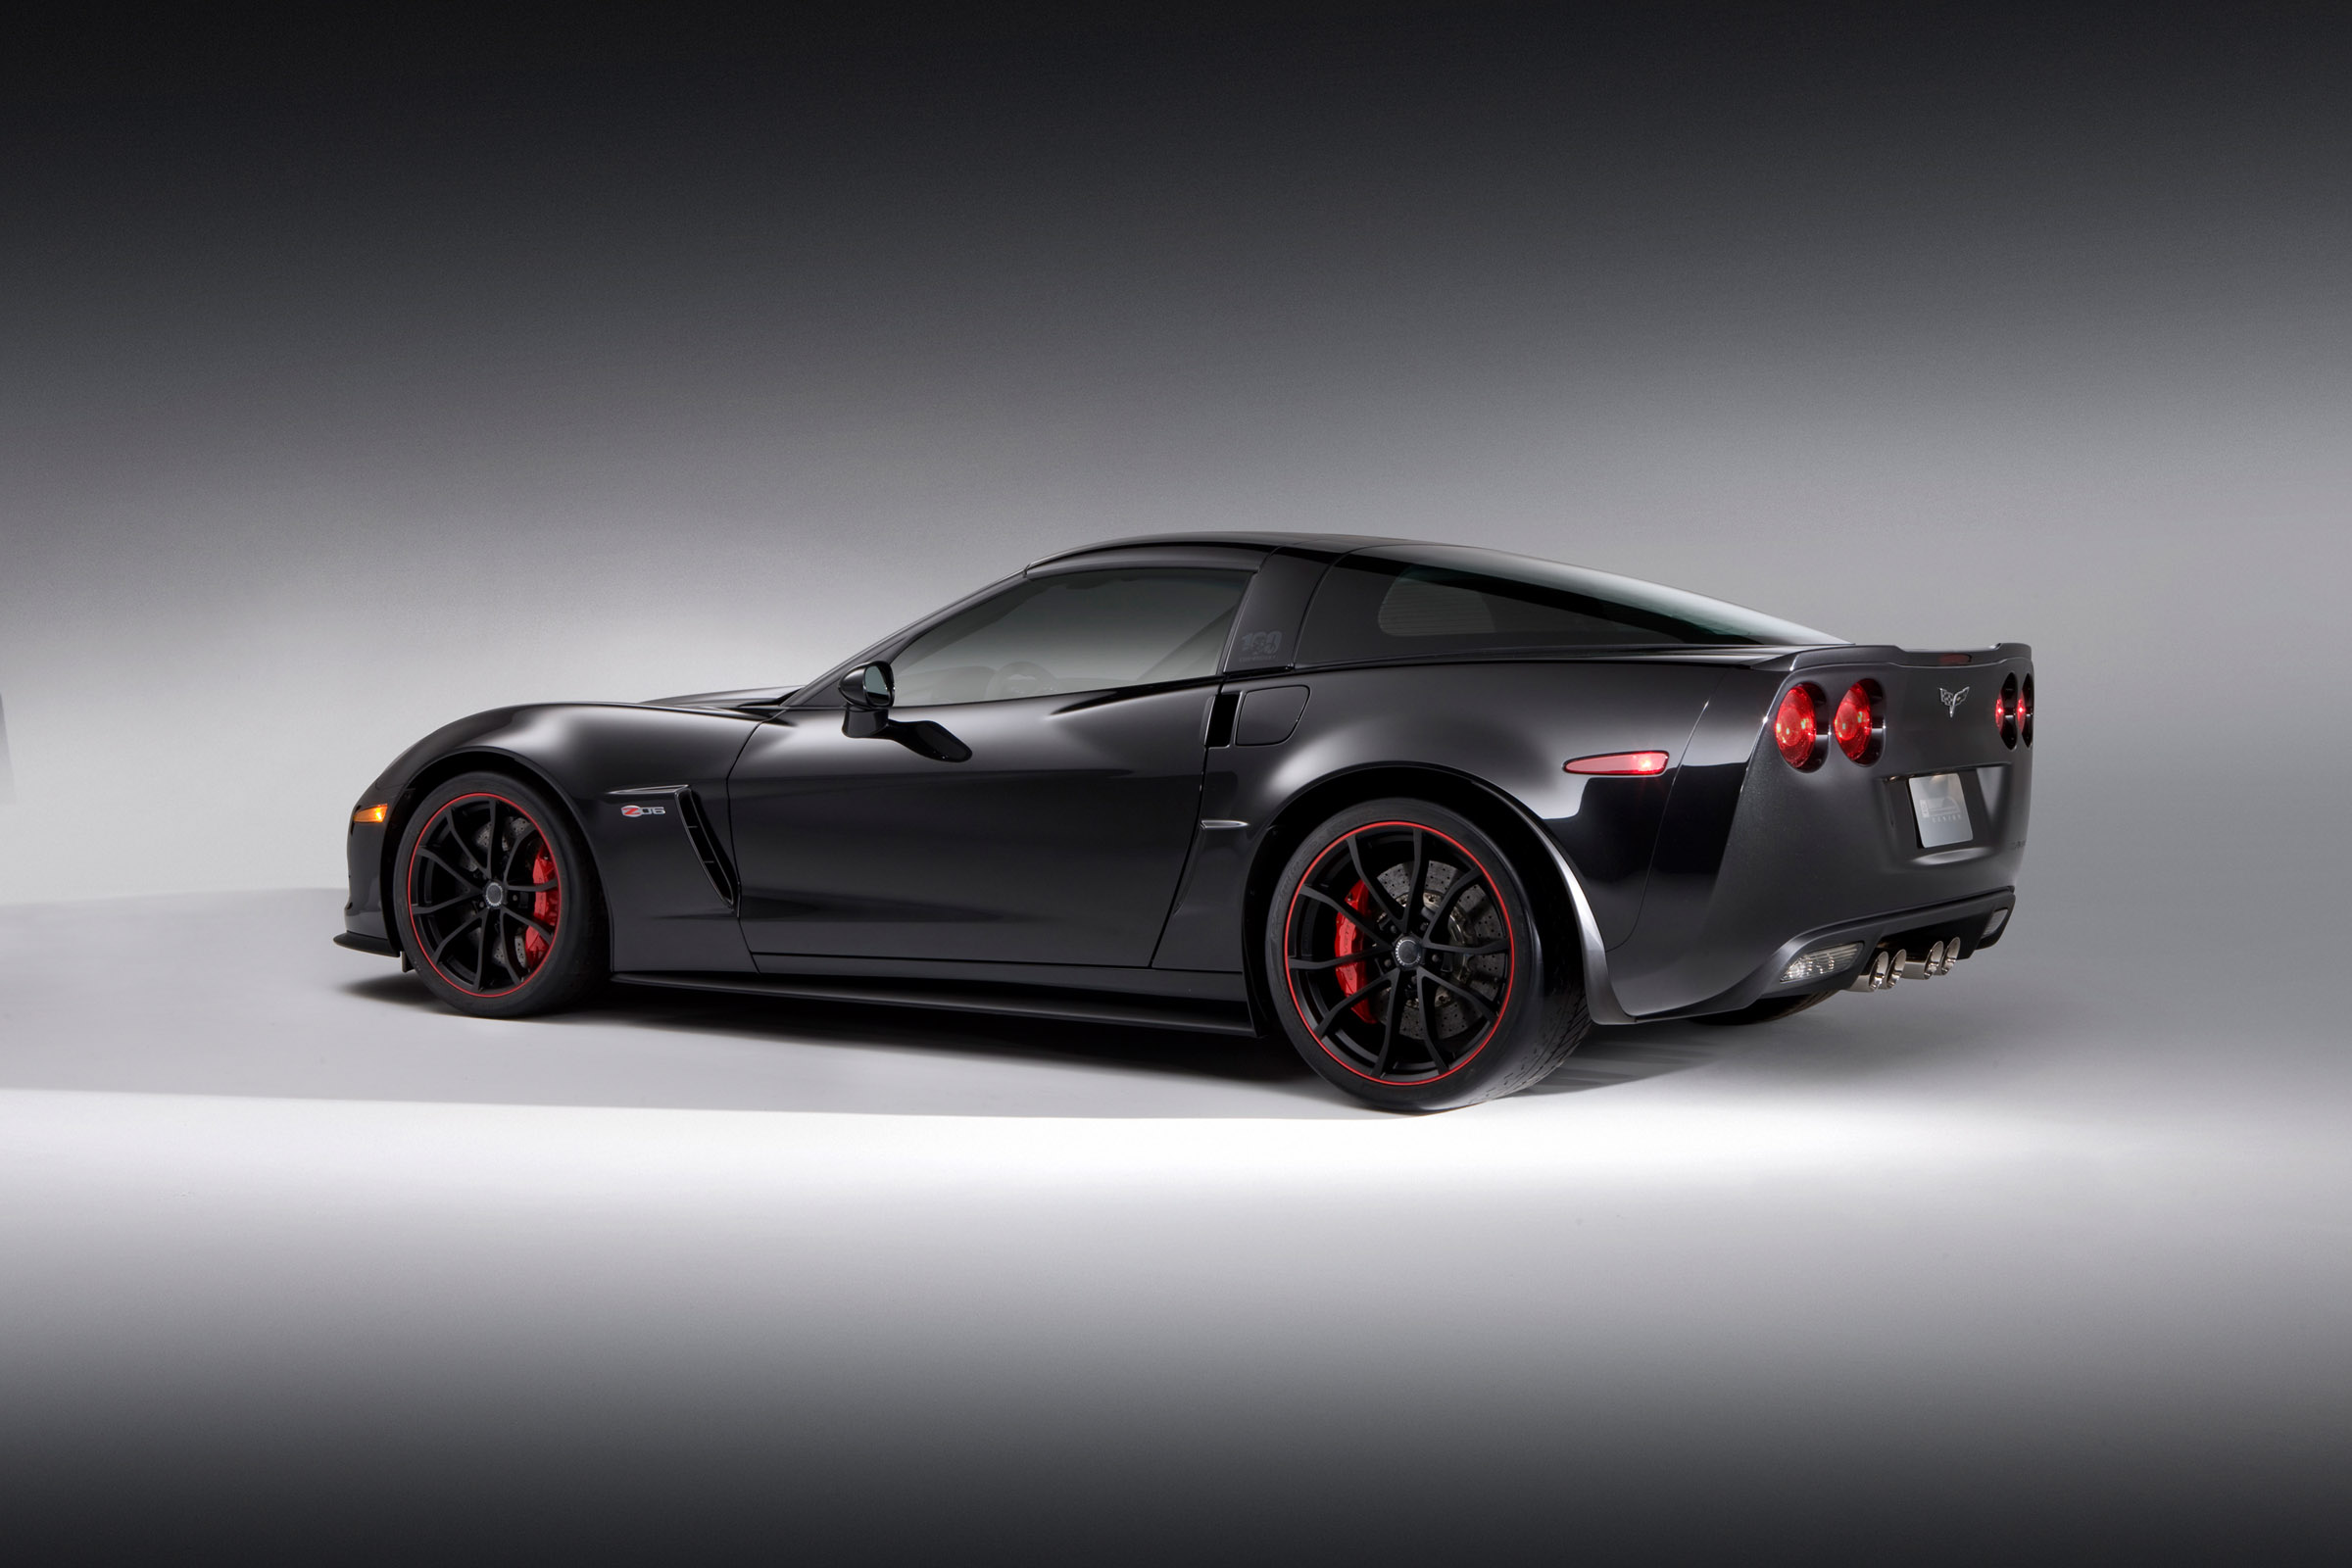 2012 Chevrolet Centennial Edition Corvette Z06 Picture #1 of 9